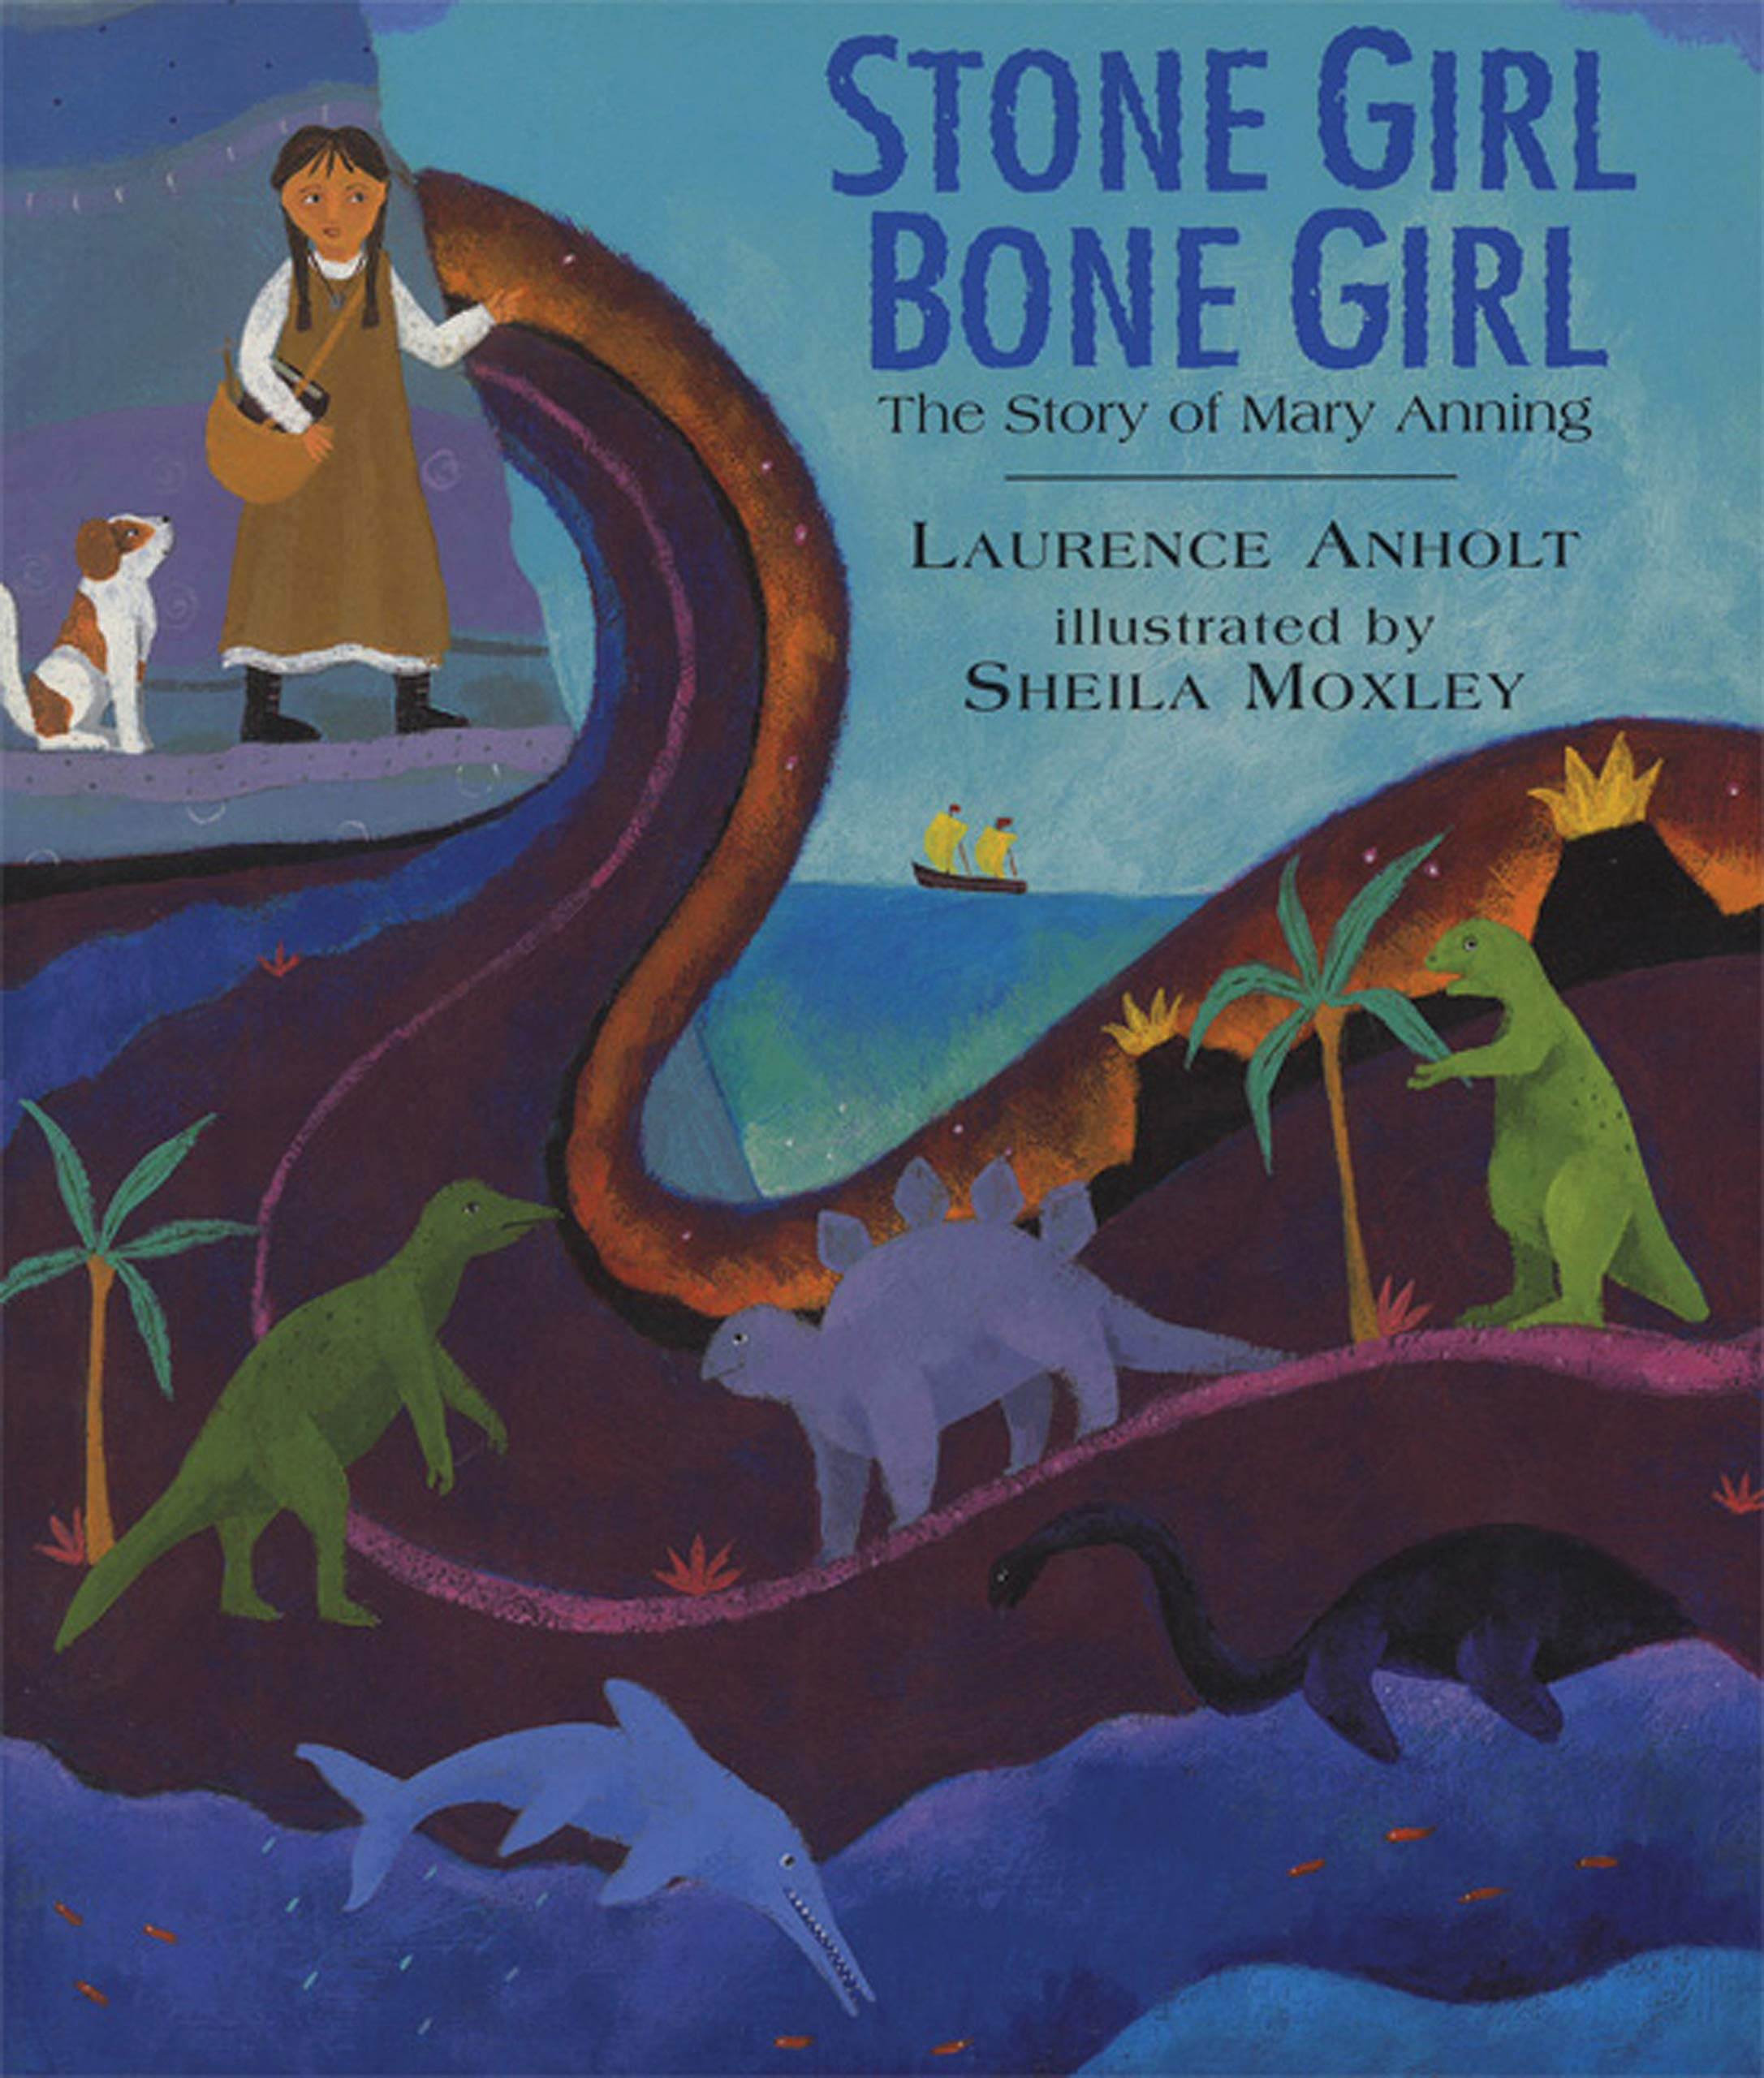 Stone Girl Bone Girl: The Story of Mary Anning of Lyme Regis: 1:  Amazon.co.uk: Anholt, Laurence, Moxley, Sheila: Books